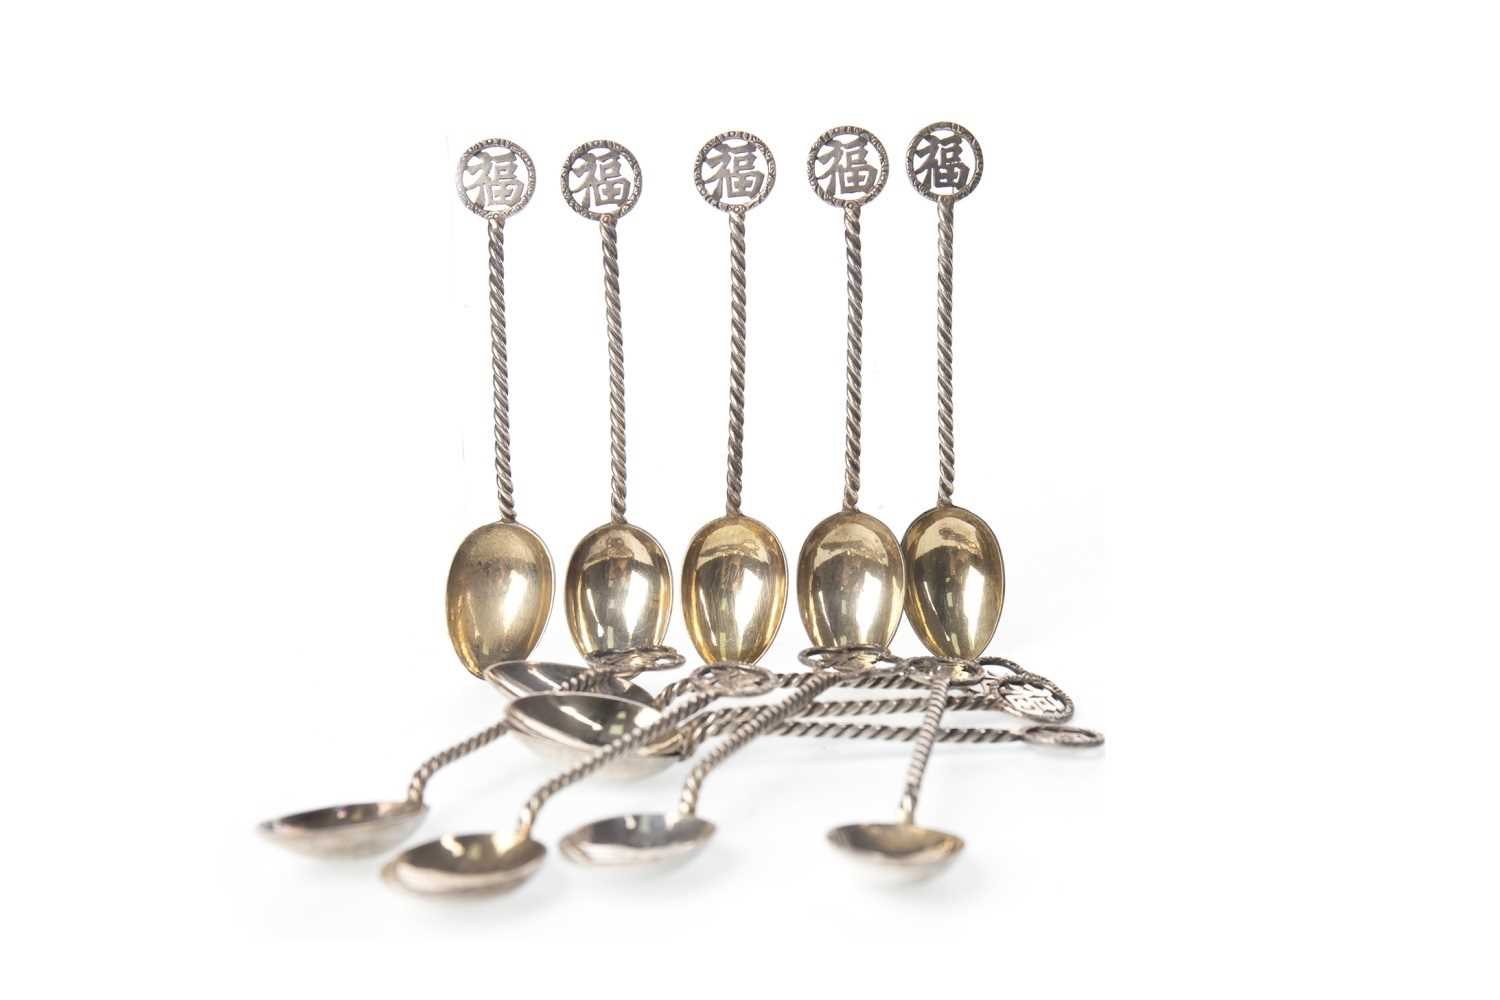 Lot 1016-A SET OF TWELVE EARLY 20TH CENTURY CHINESE SILVER TEA SPOONS